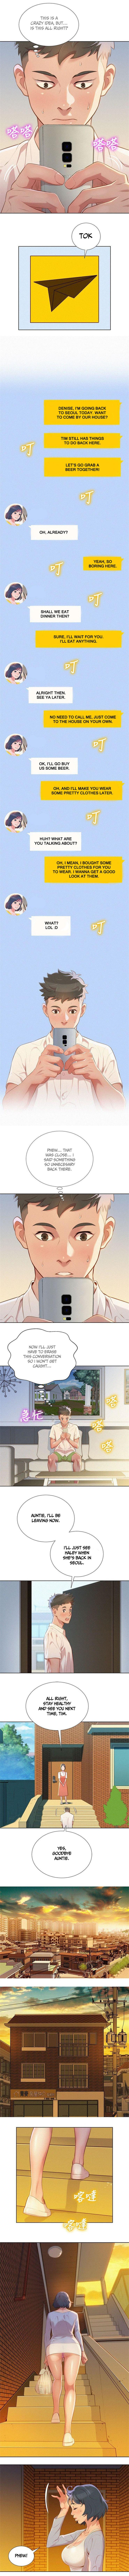 What do you Take me For? Ch.42/? 329